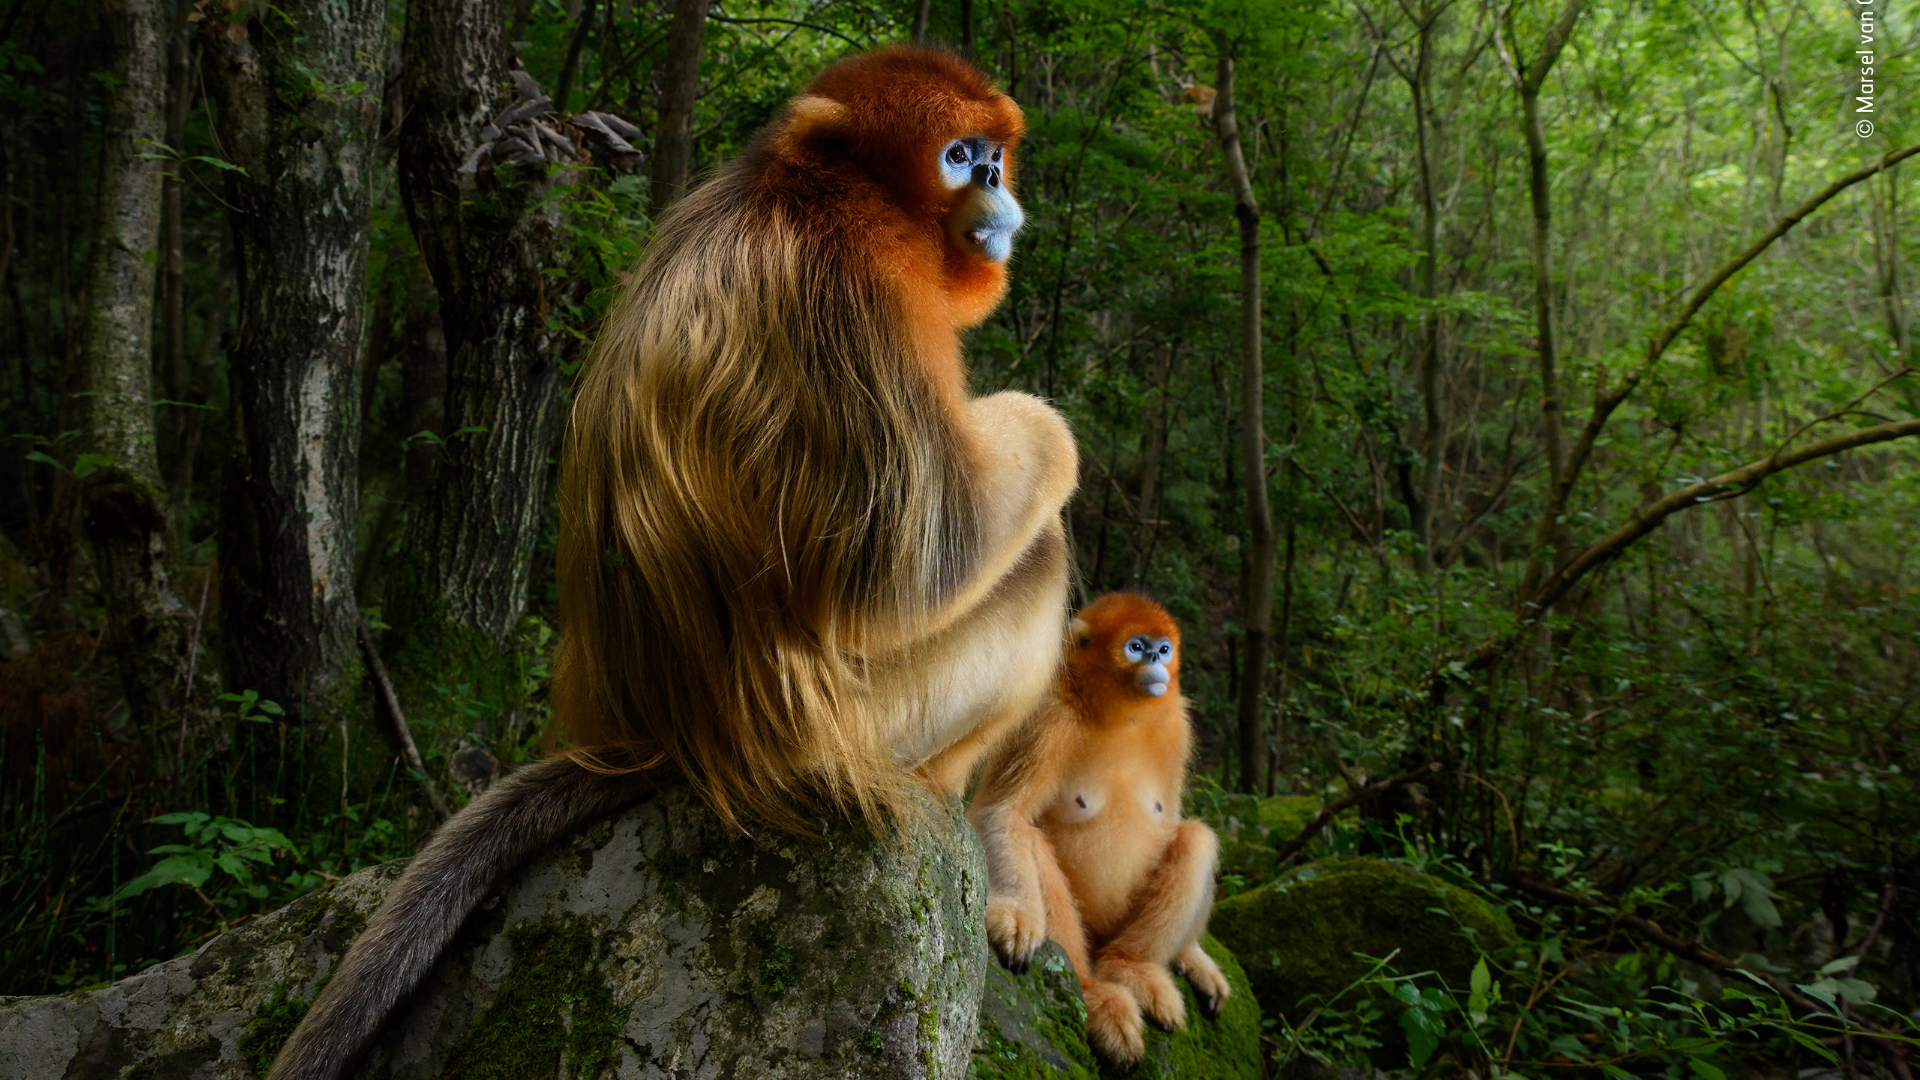 Two Qinling golden snub-nosed monkeys rest on a stone as part of the Wildlife Photographer of the Year exhibition at the Natural History Museum